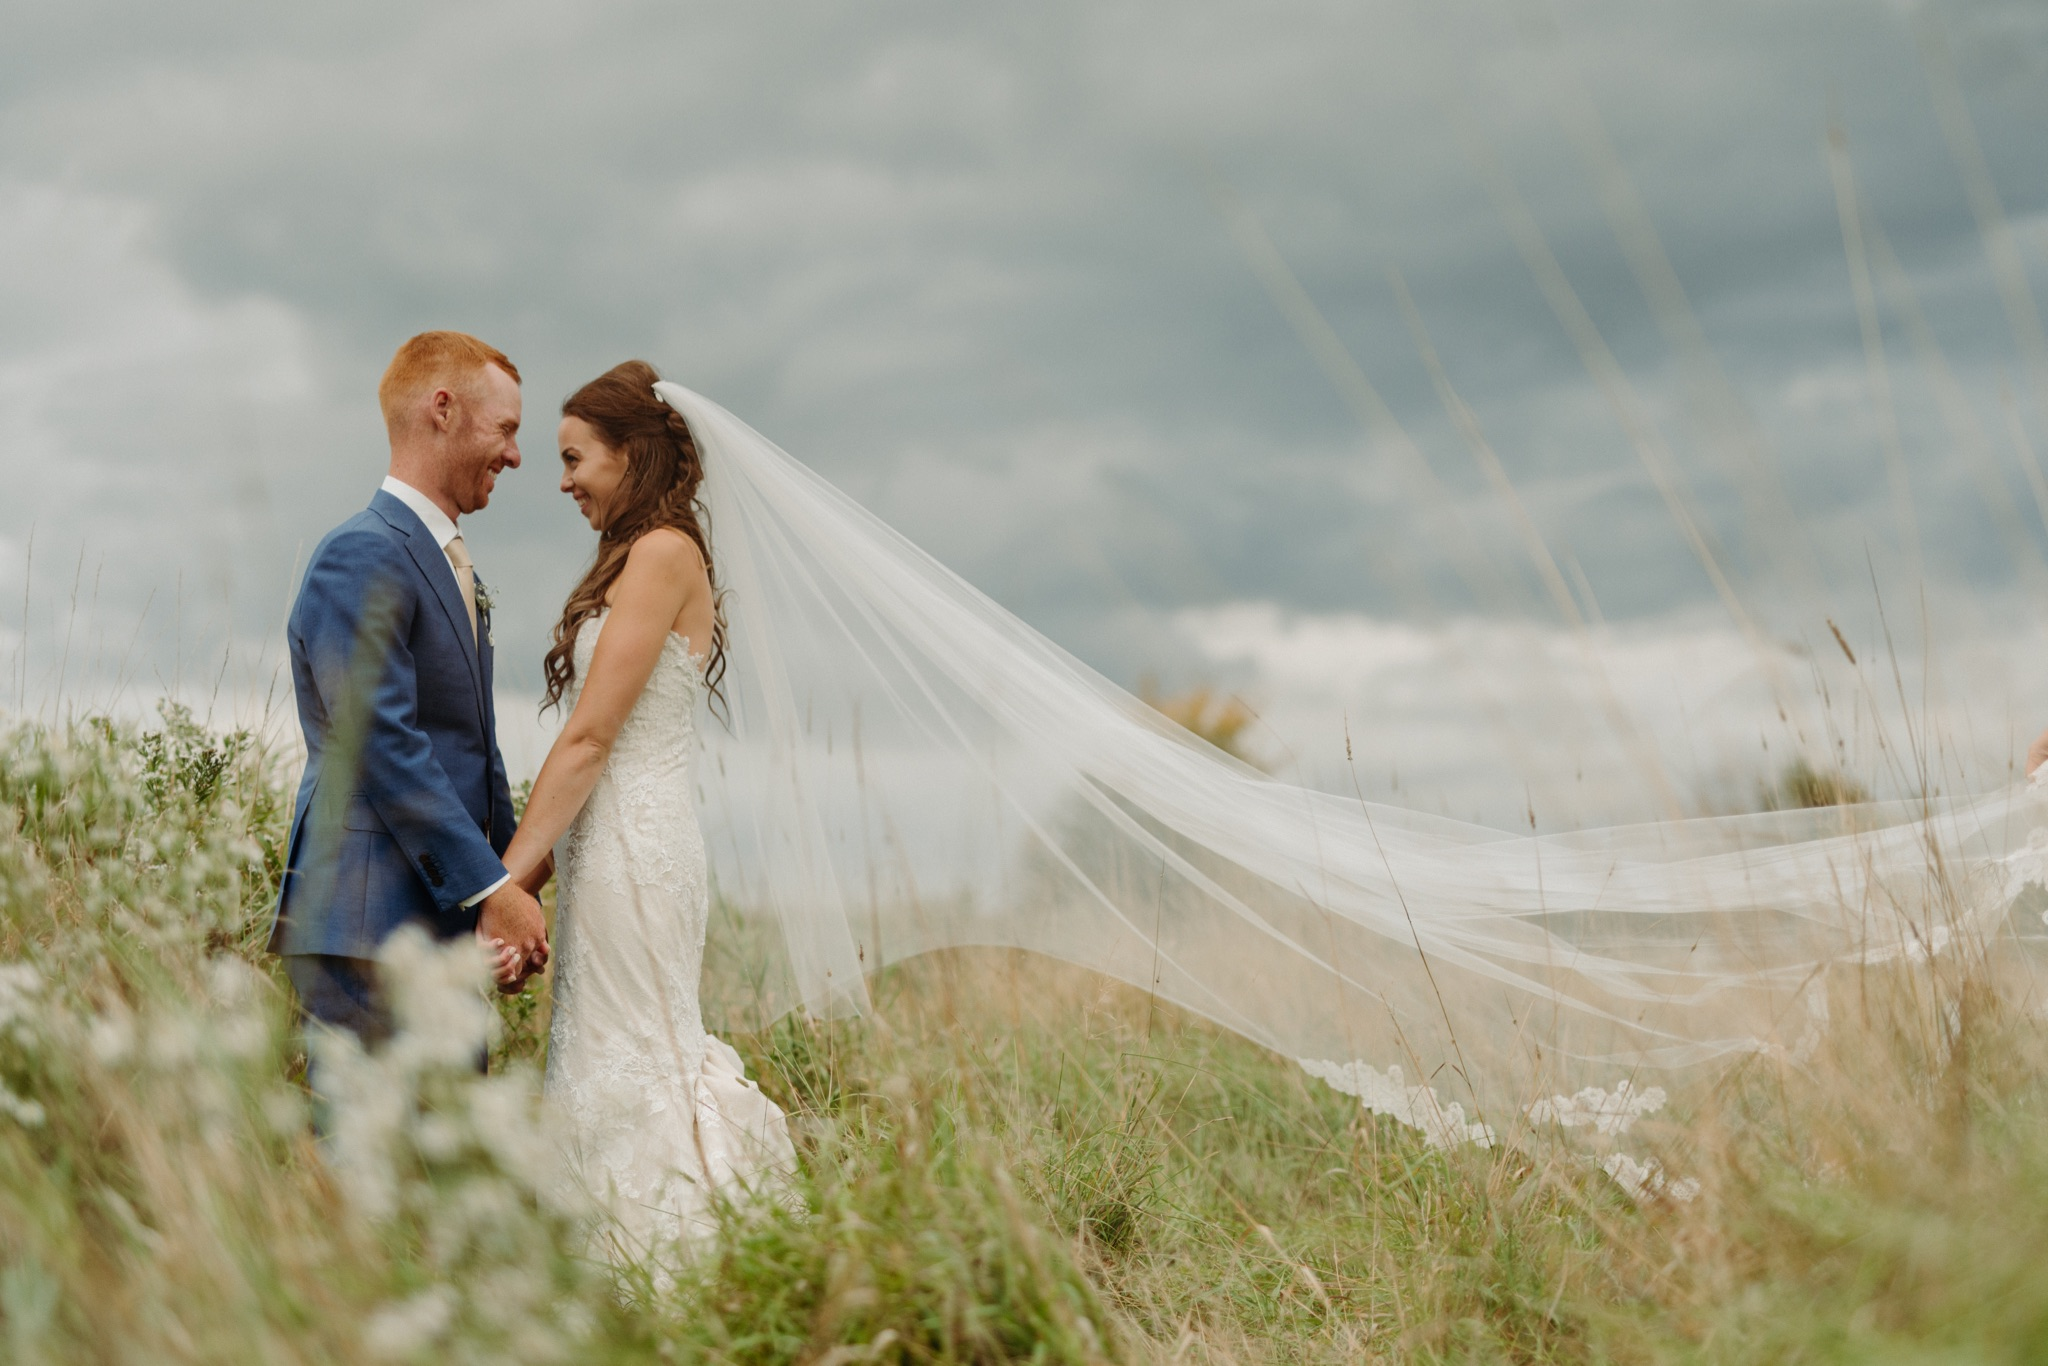 bride and groom standing in a field with bride's veil blowing in the wind